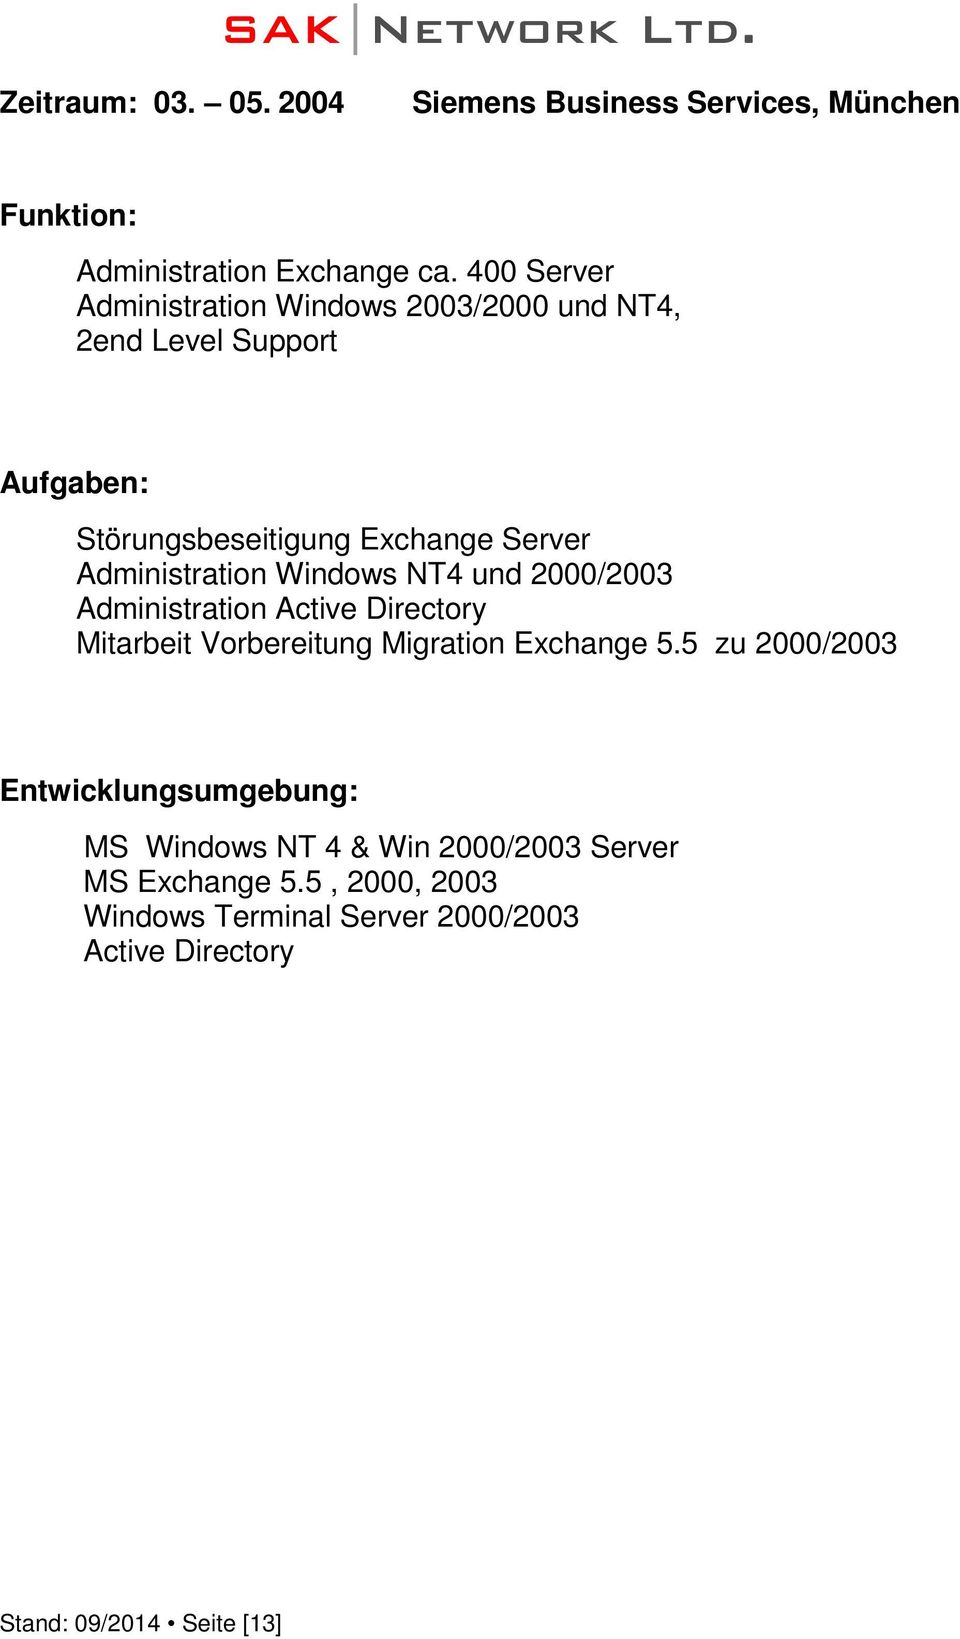 Administration Windows NT4 und 2000/2003 Administration Active Directory Mitarbeit Vorbereitung Migration Exchange 5.